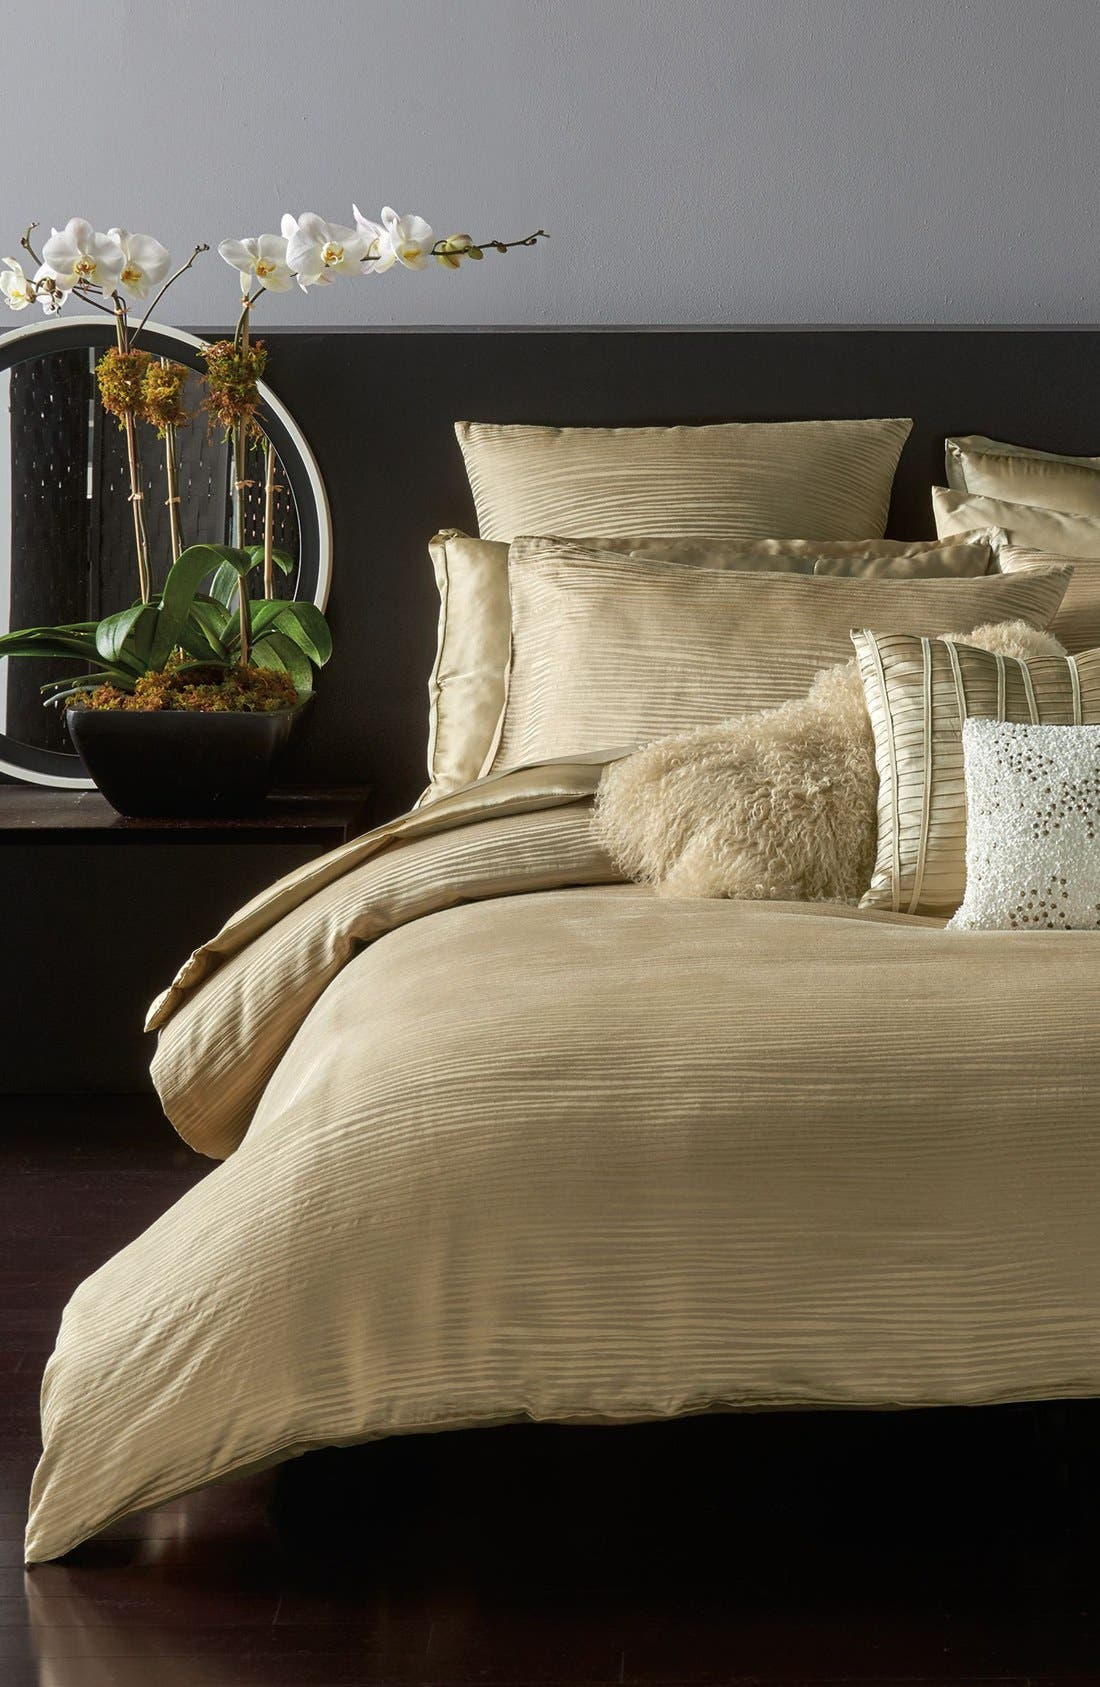 Donna Karan Collection 'Reflection' Duvet Cover,                         Main,                         color, GOLD DUST